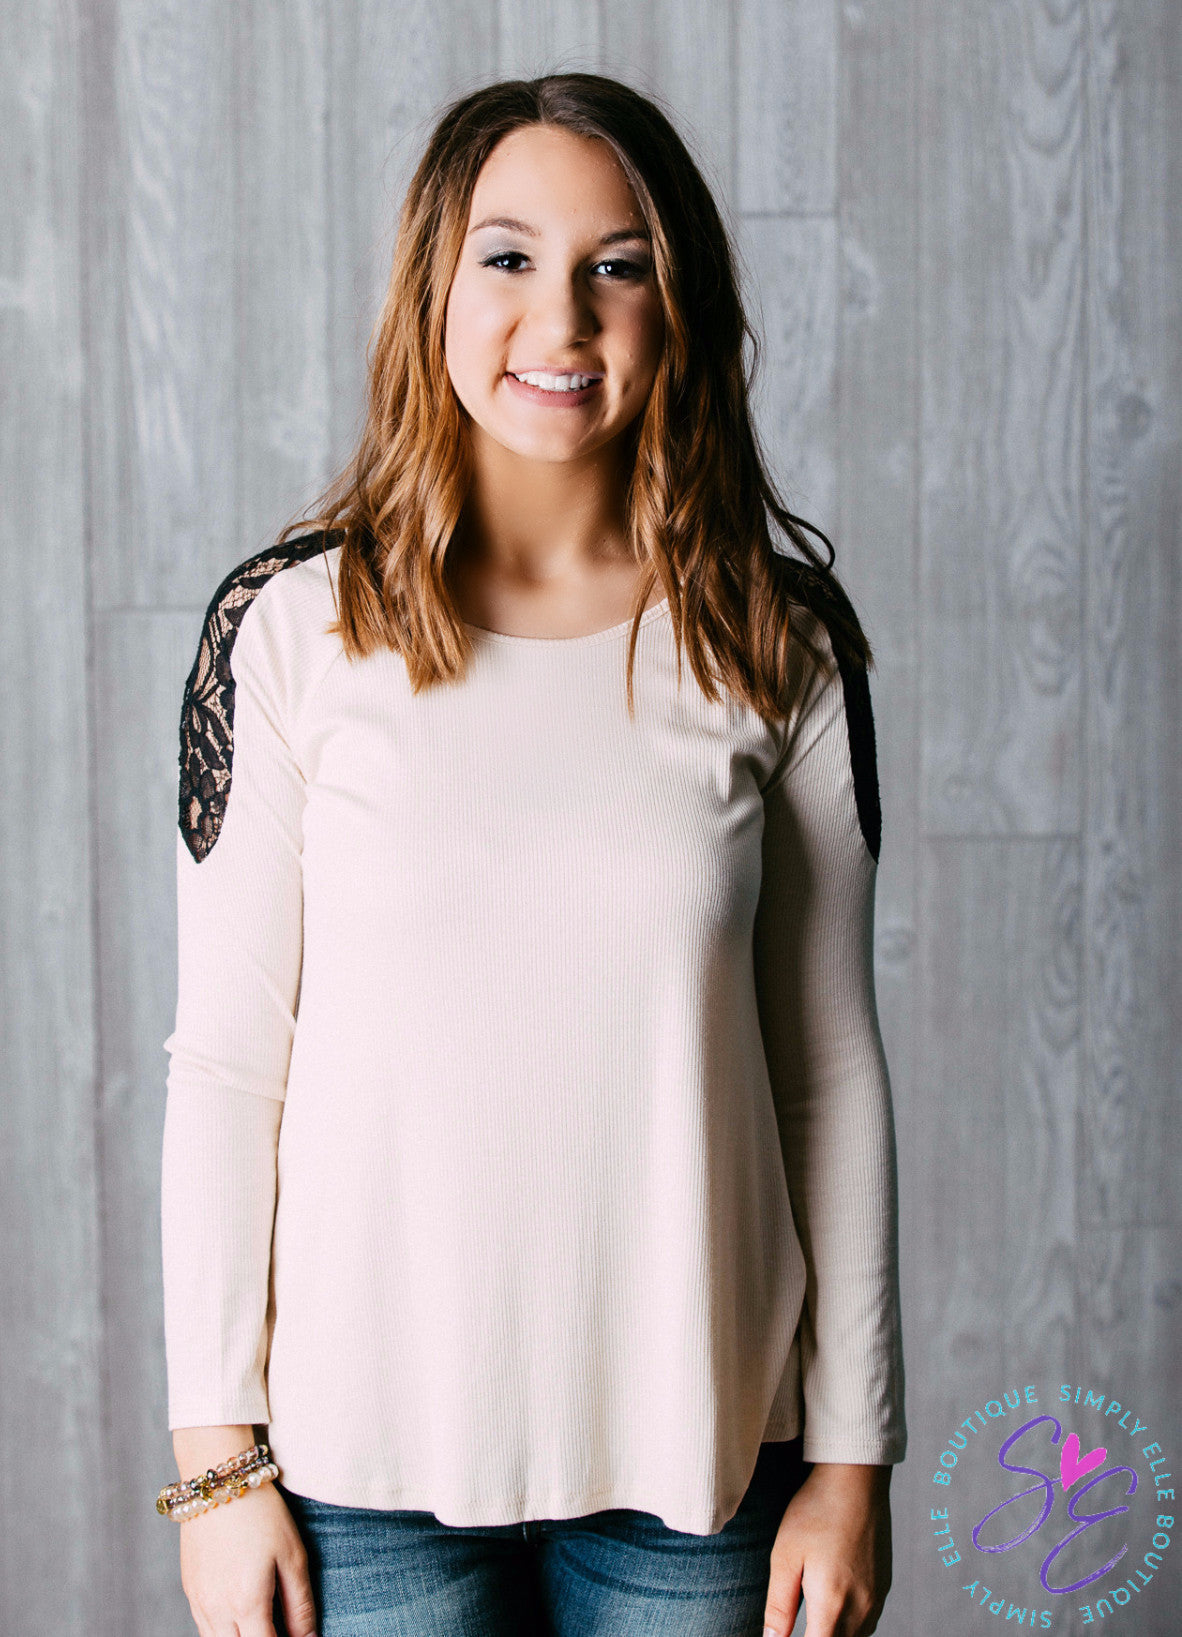 Long sleeve Ivory Lace Top. Black arm and neck detailing.